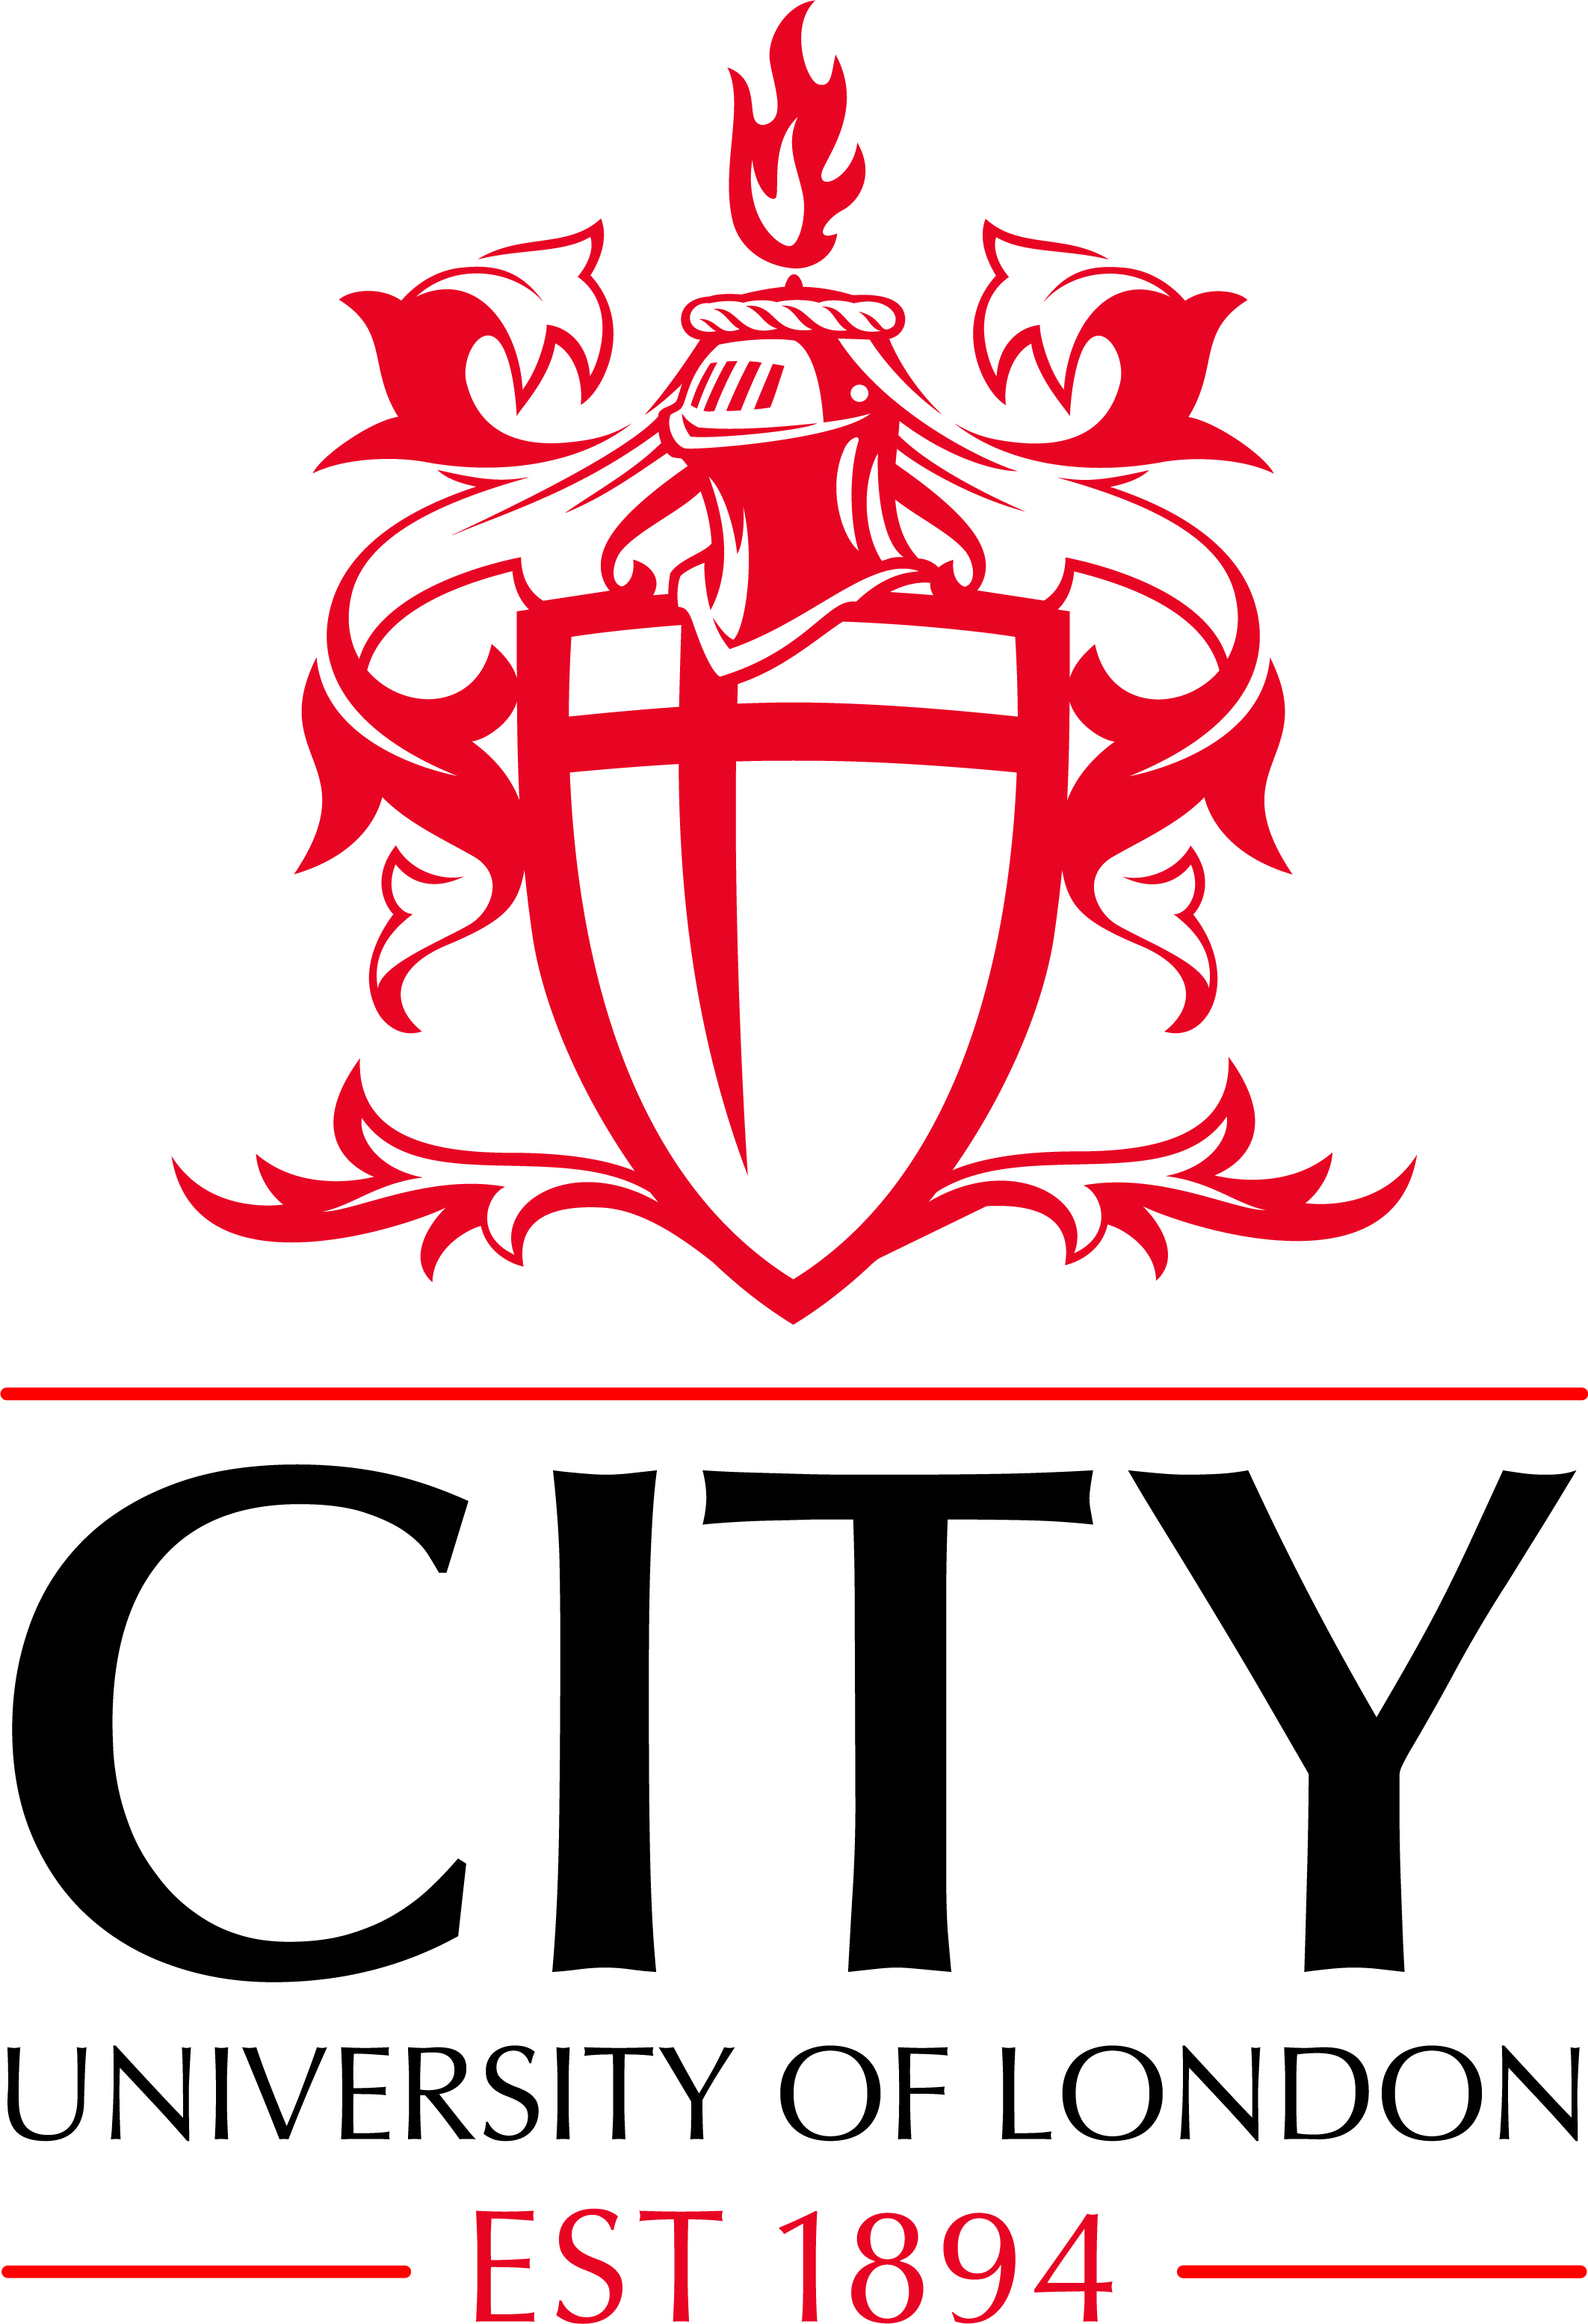 Welcome to your City University London graduation merchandise page.